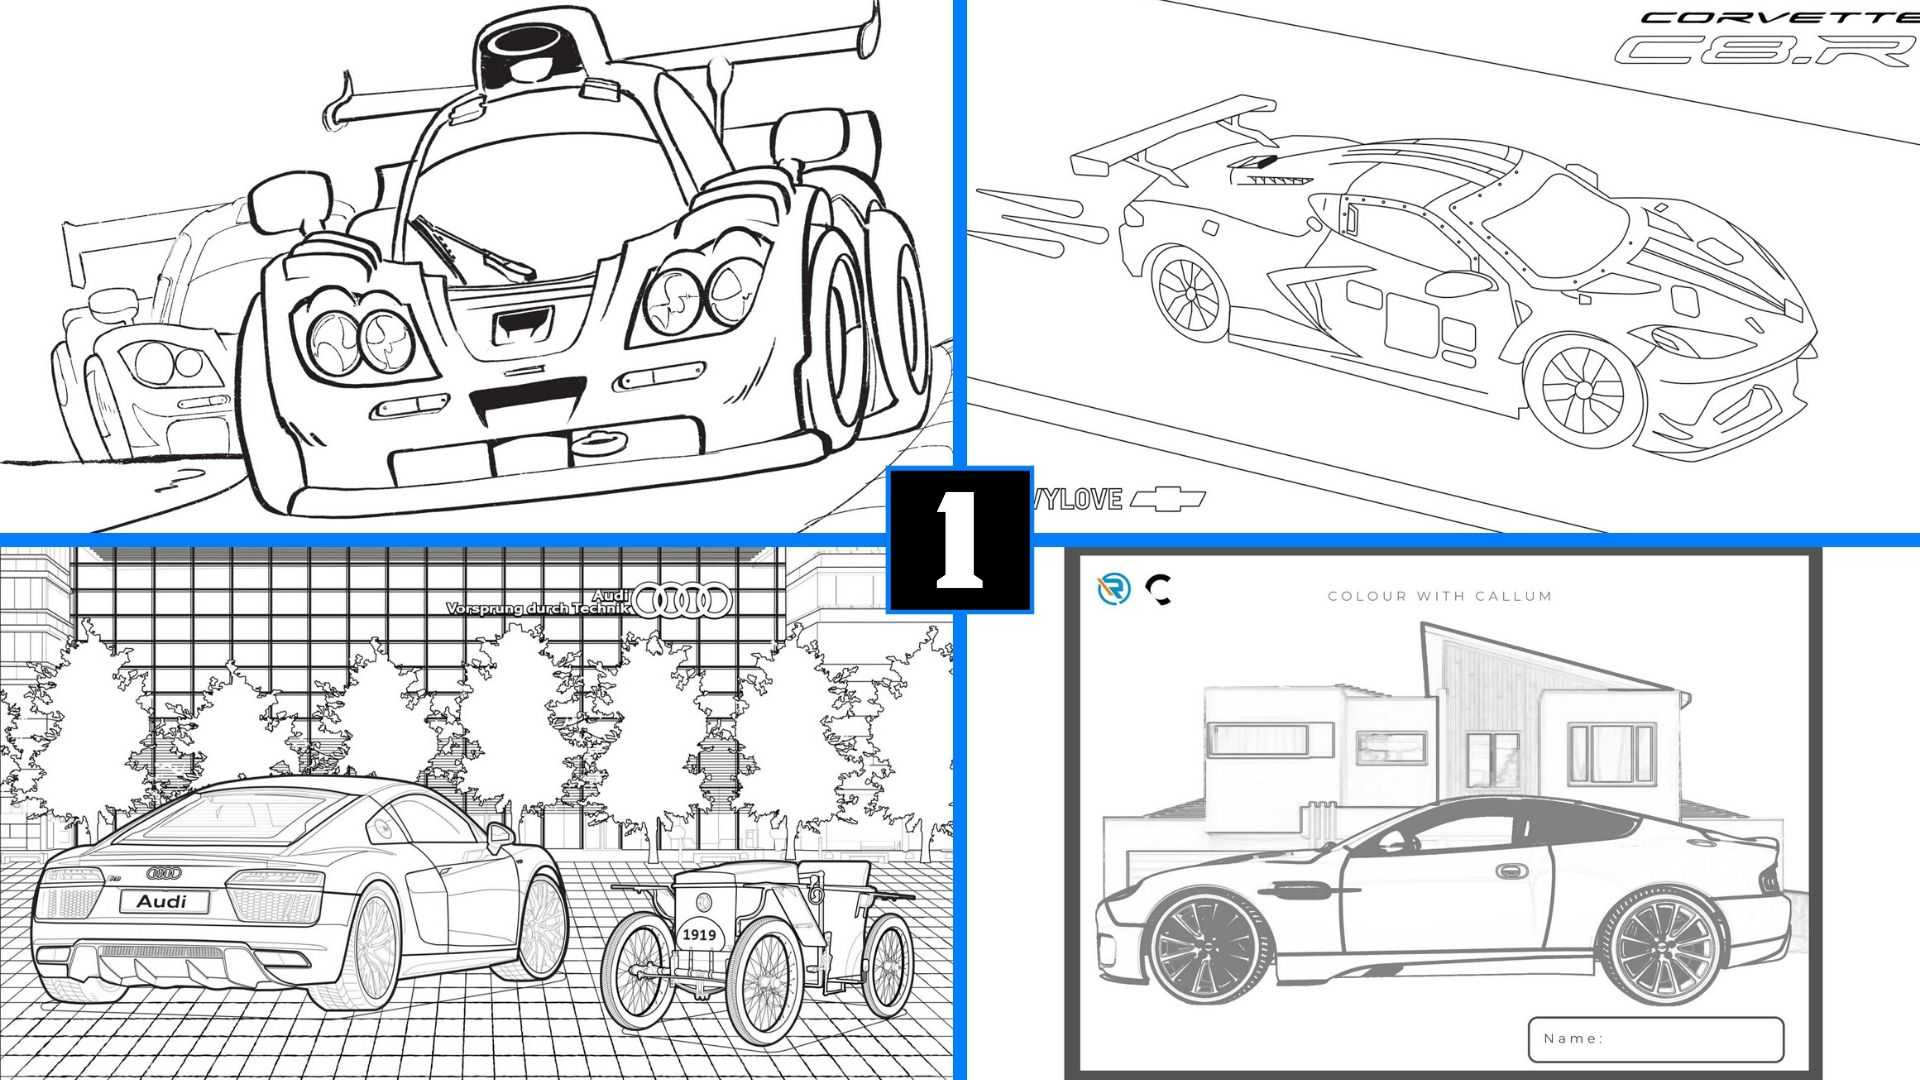 Here Are Car-Themed Coloring Pages To Keep You And The Kids Busy